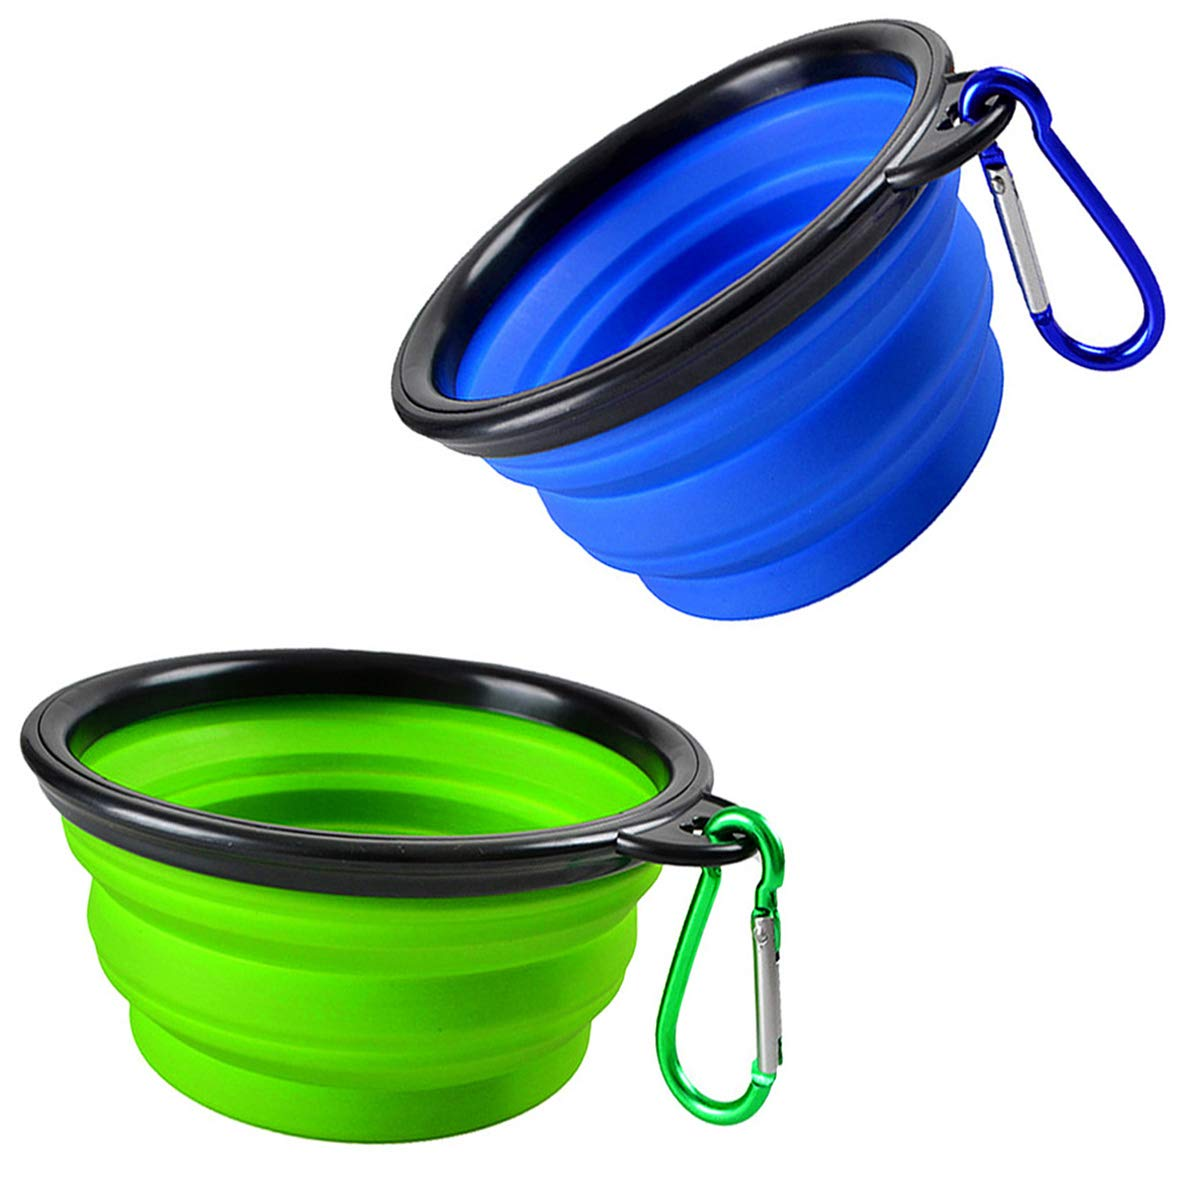 Top 10 Best Collapsible Pet Bowl